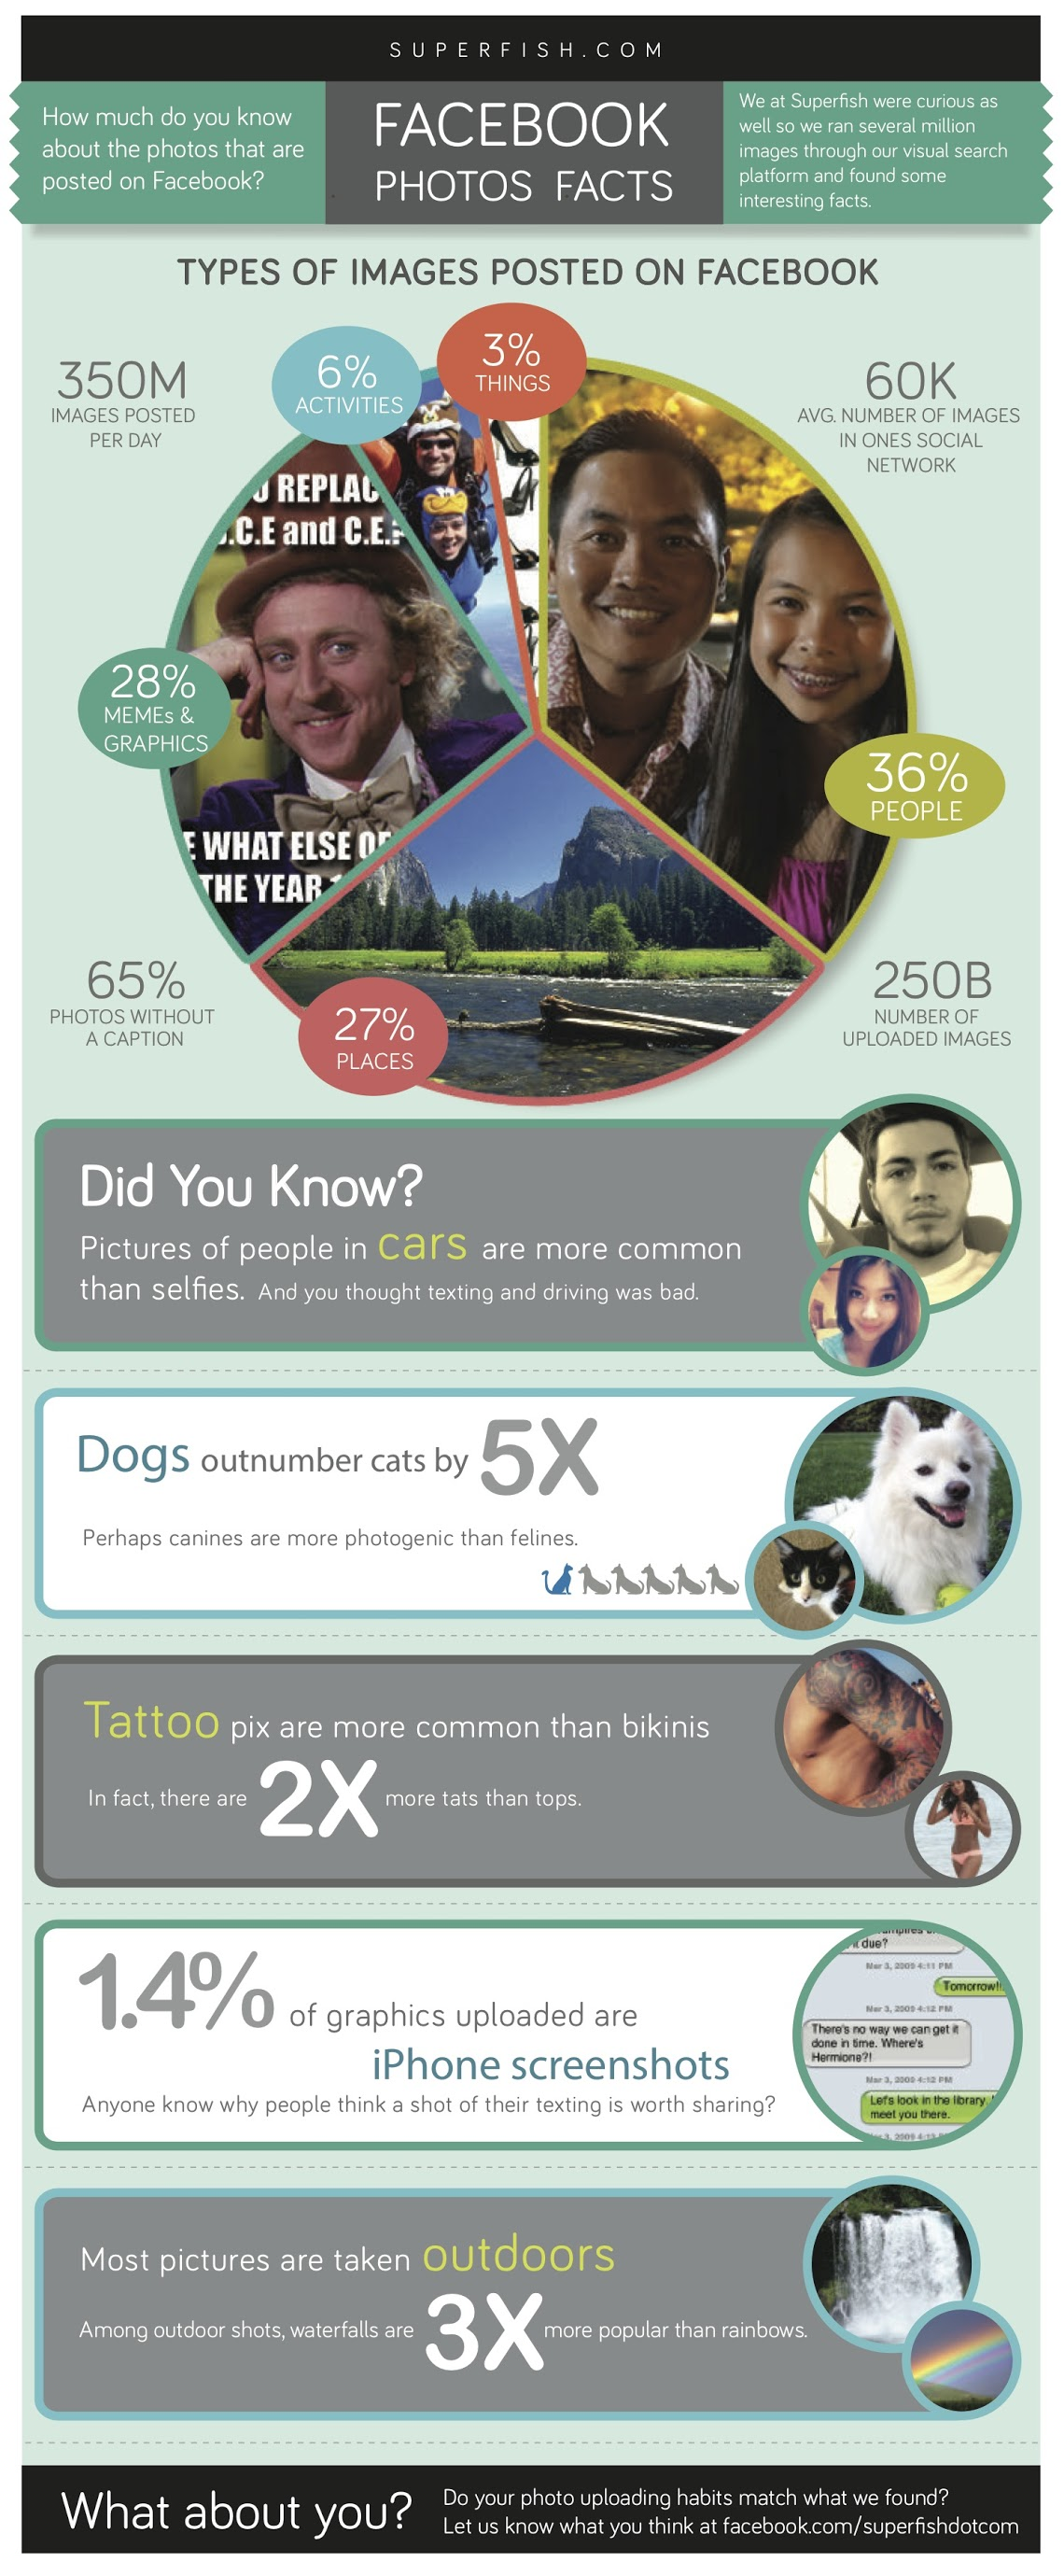 10+ Facebook Photo Facts [INFOGRAPHIC]